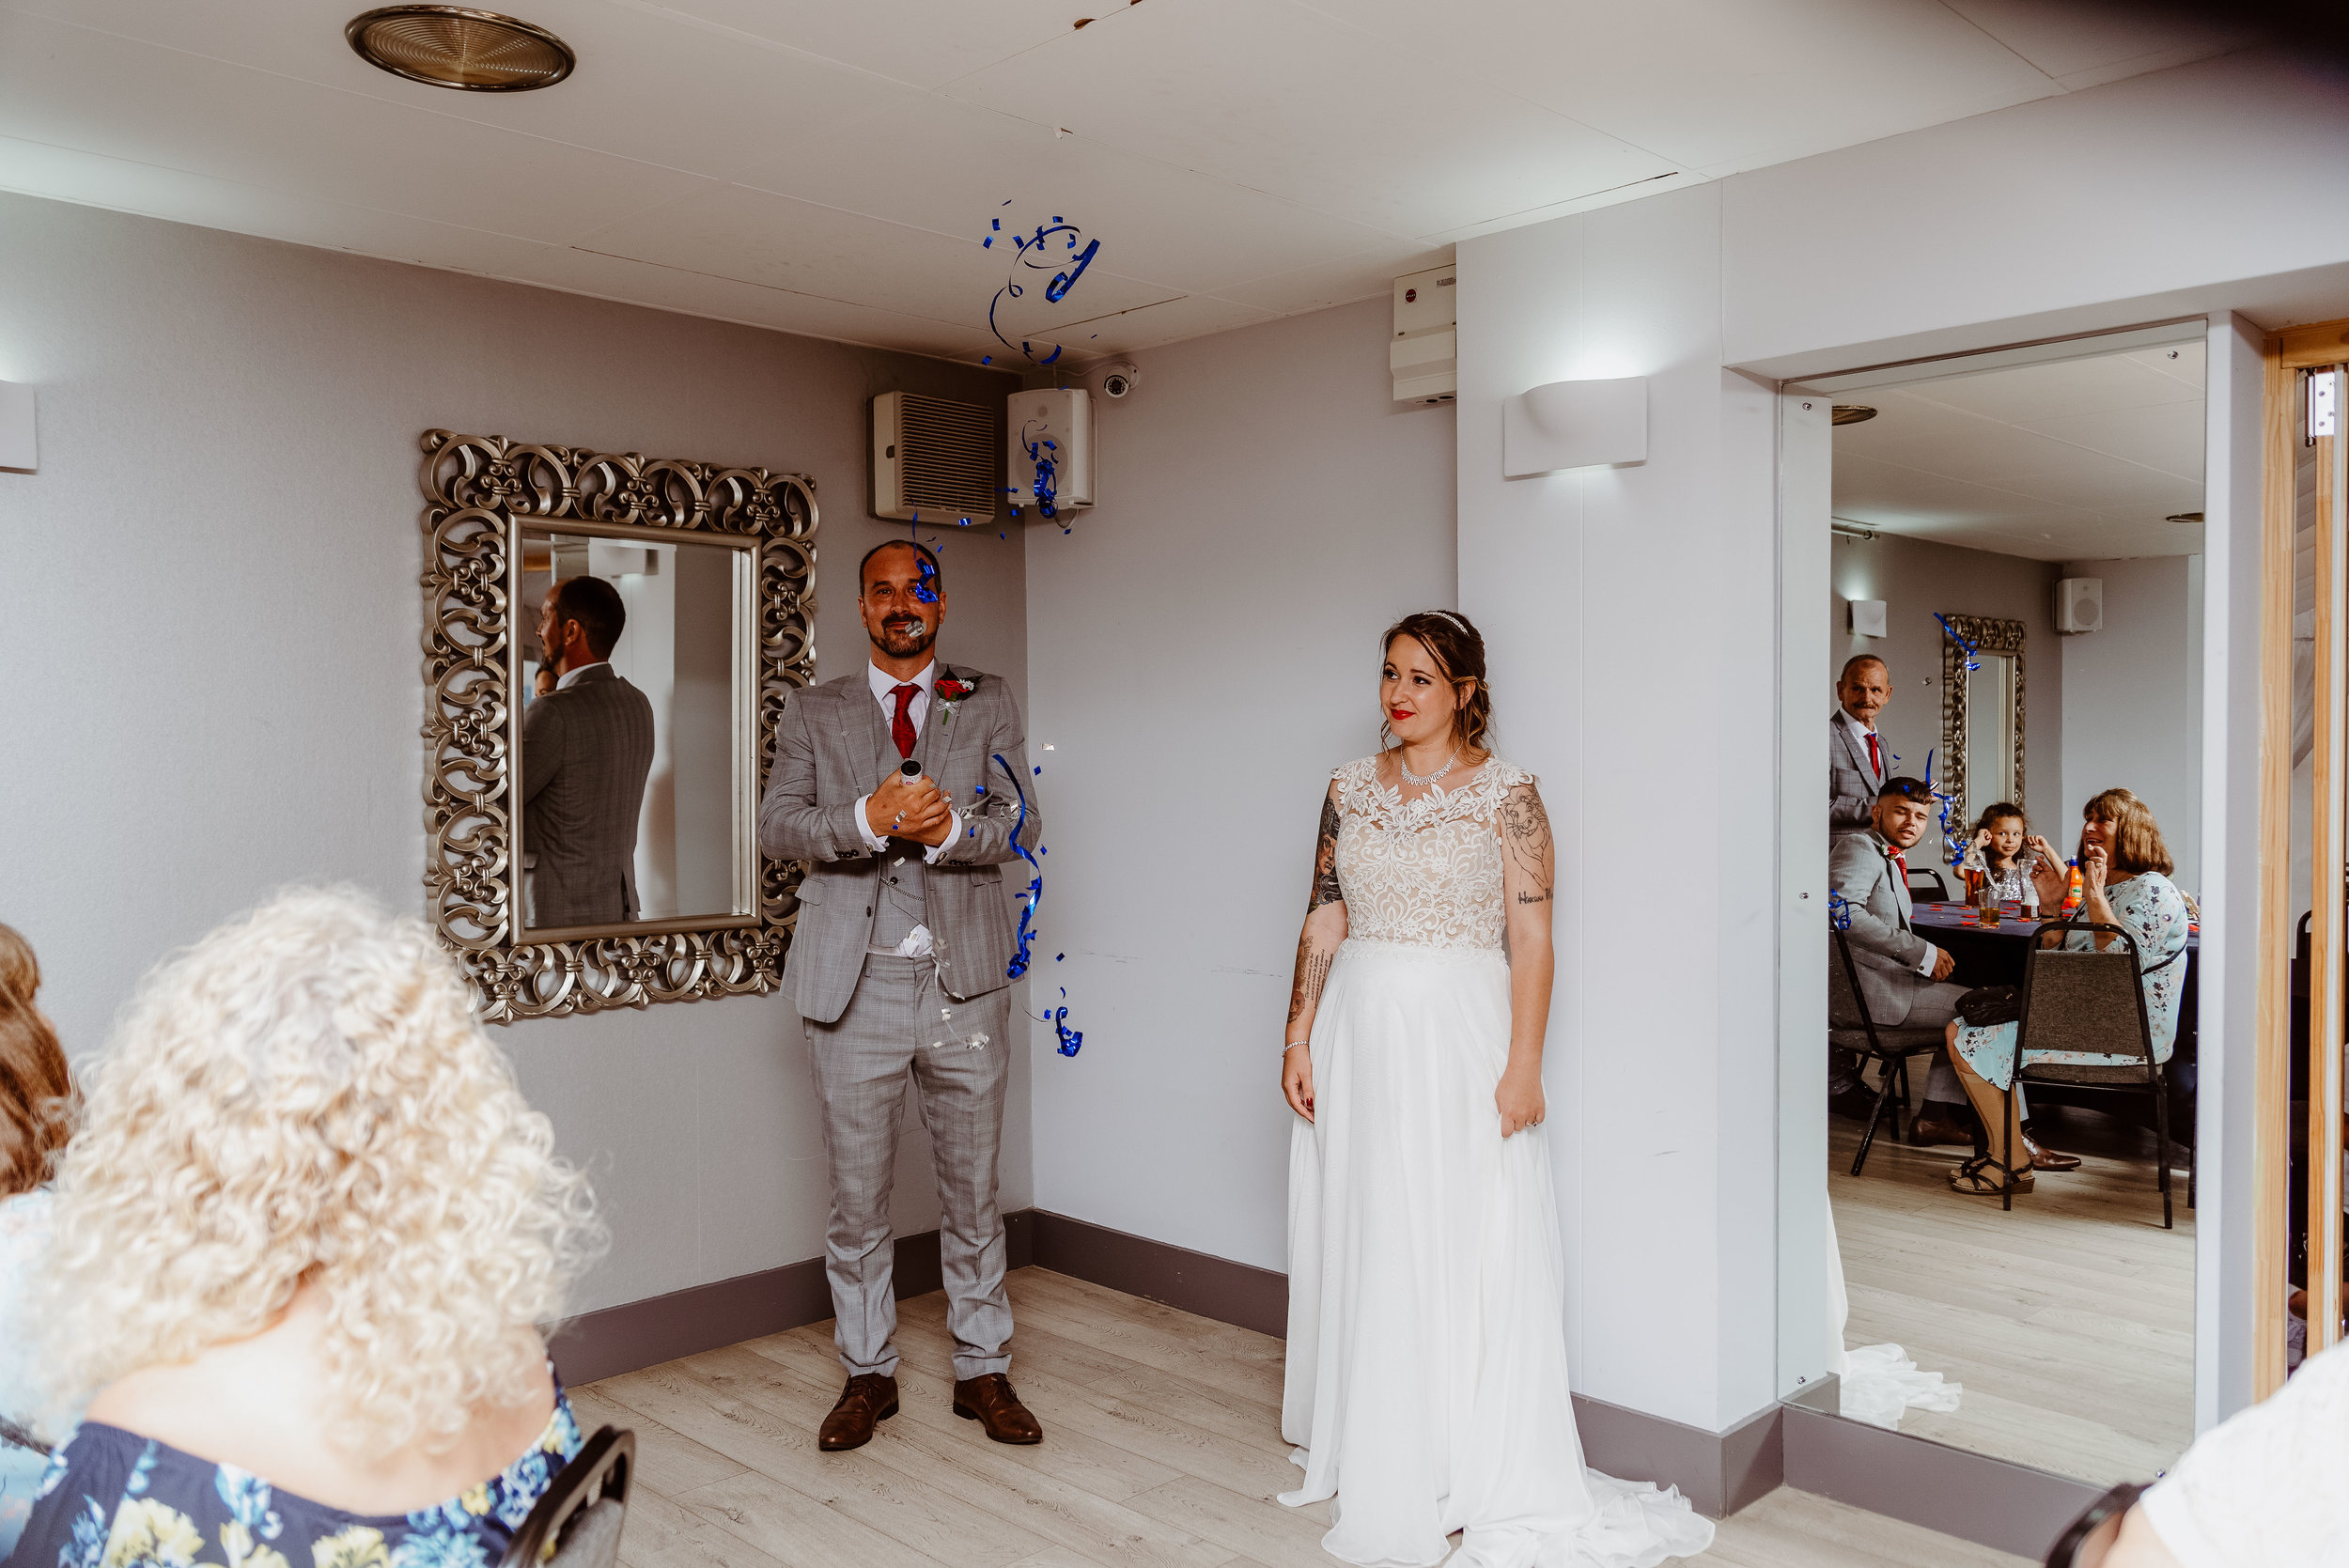 Suffolk-Wedding-Photography-Ipswich-Essex-Norfolk-photographer-16.jpg